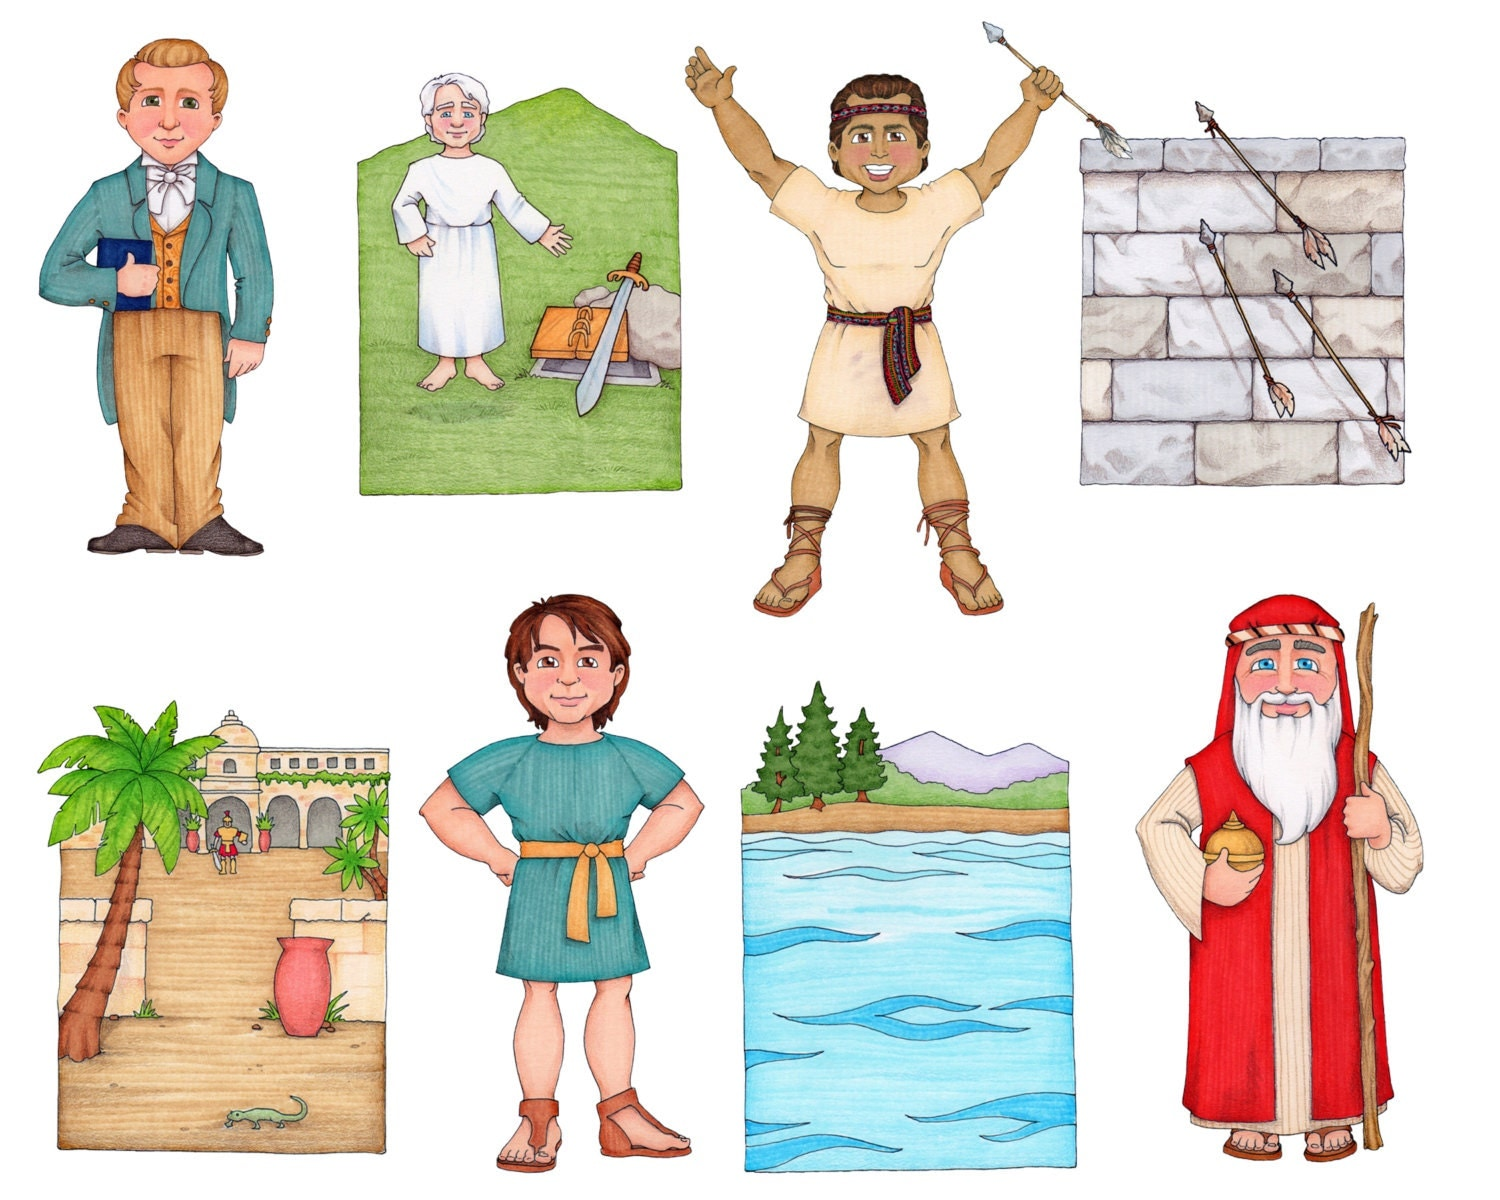 clipart of the book of mormon - photo #10